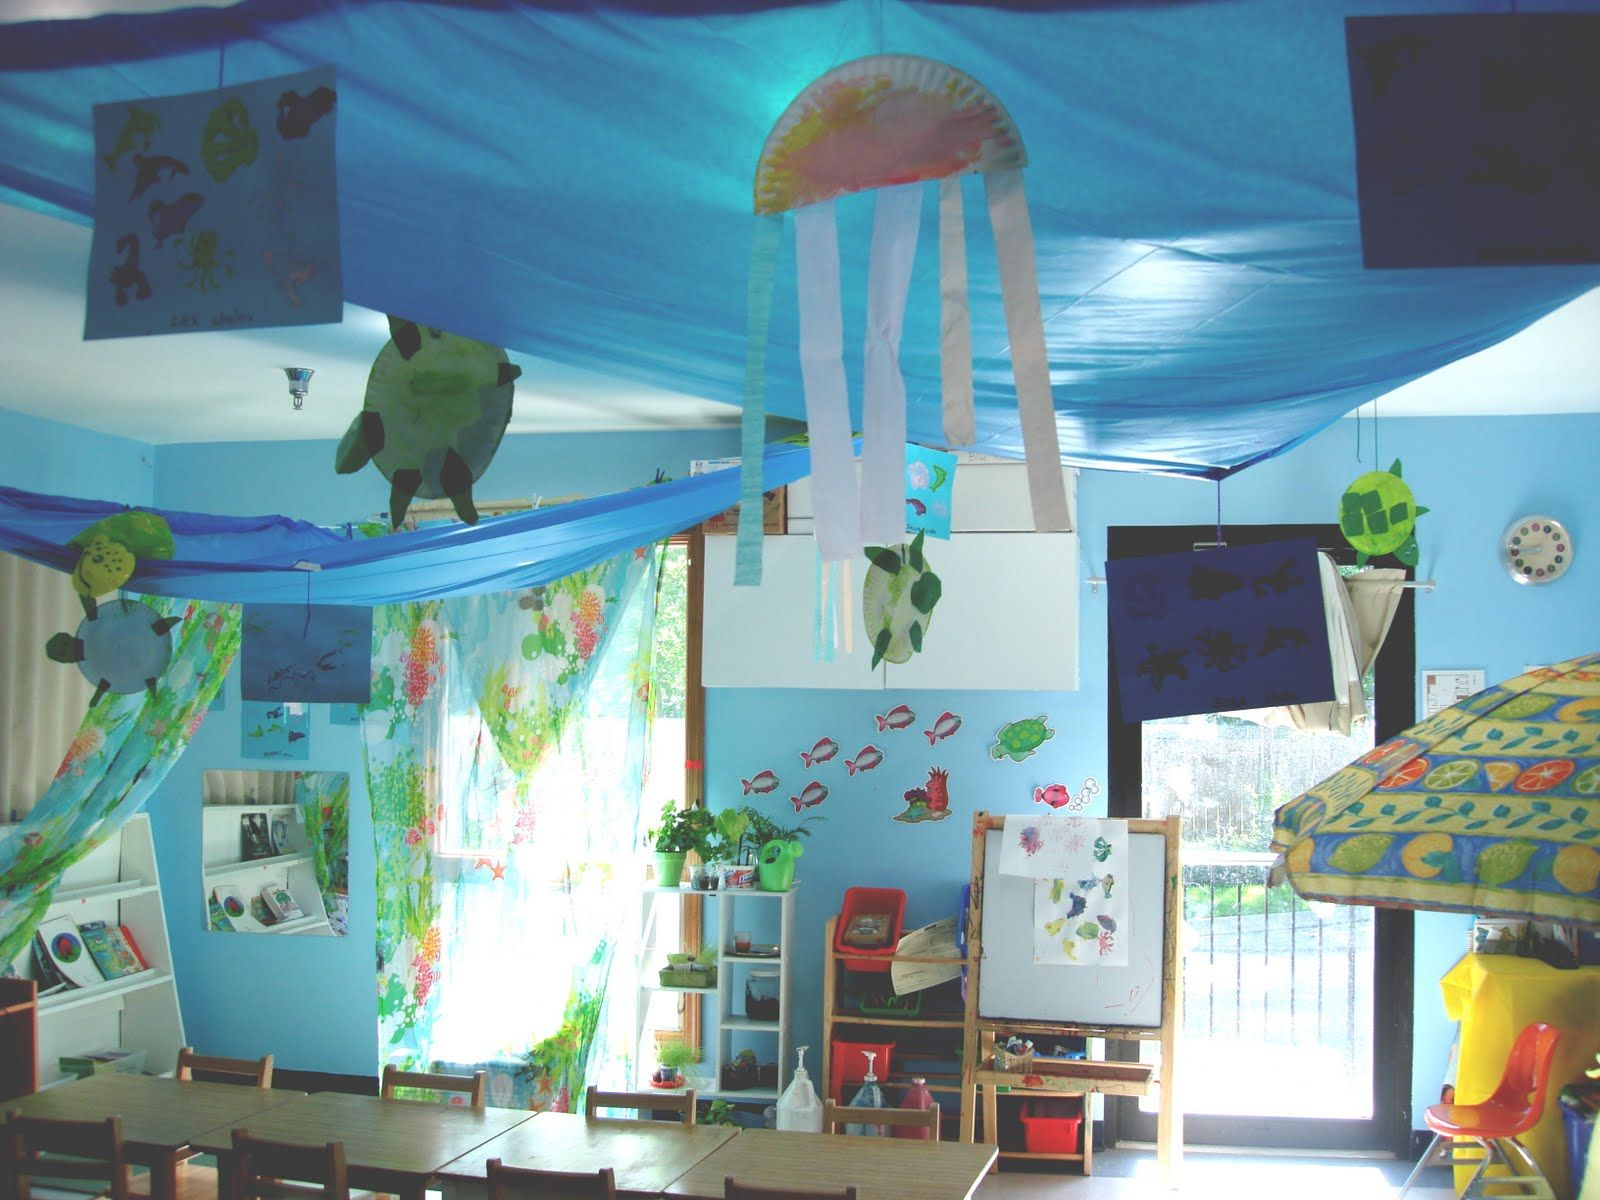 Classroom Windows Decoration Ideas : Making the ceiling look like an ocean ideas for